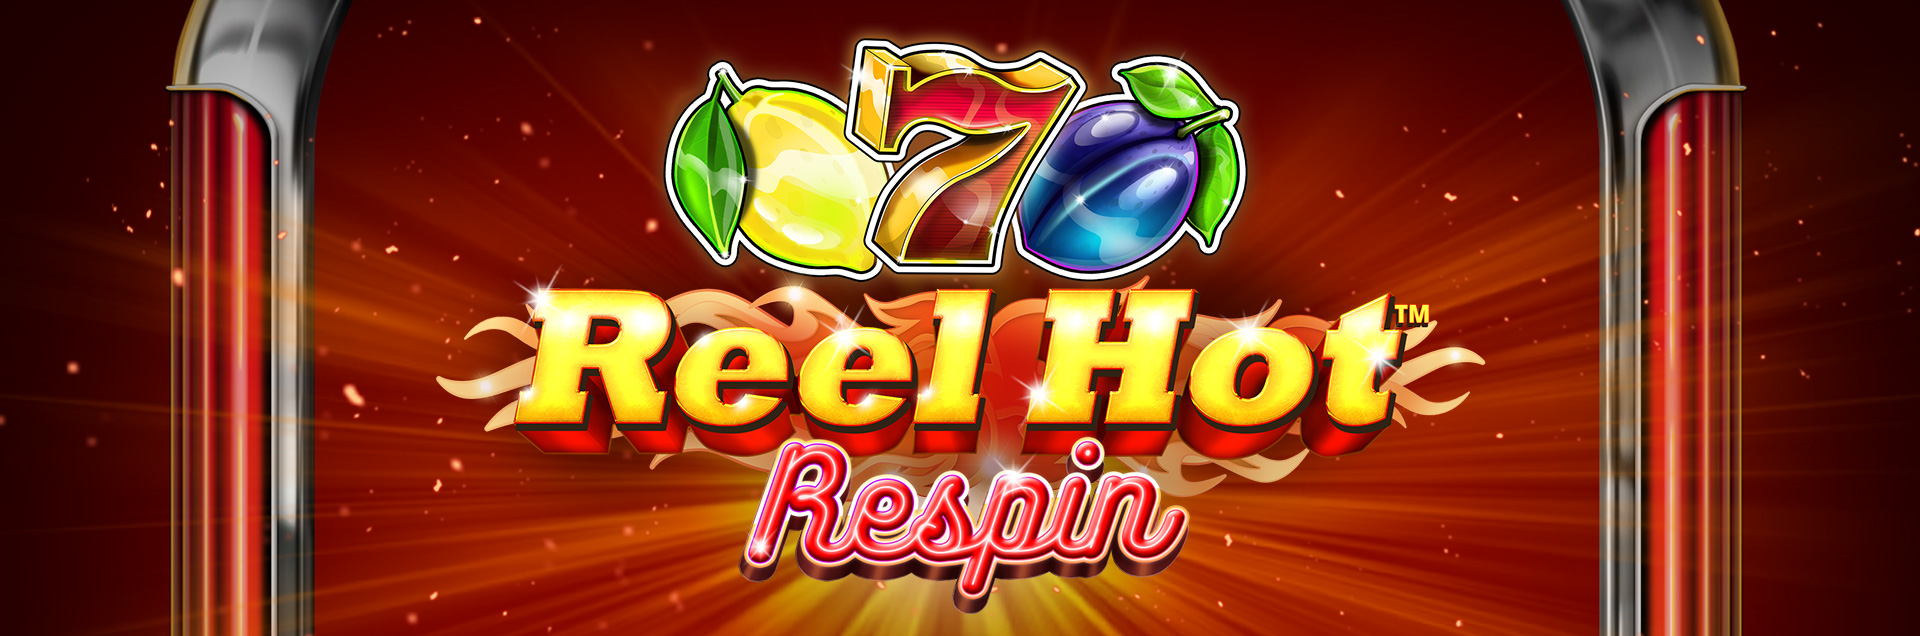 Reel Hot Respin Header games